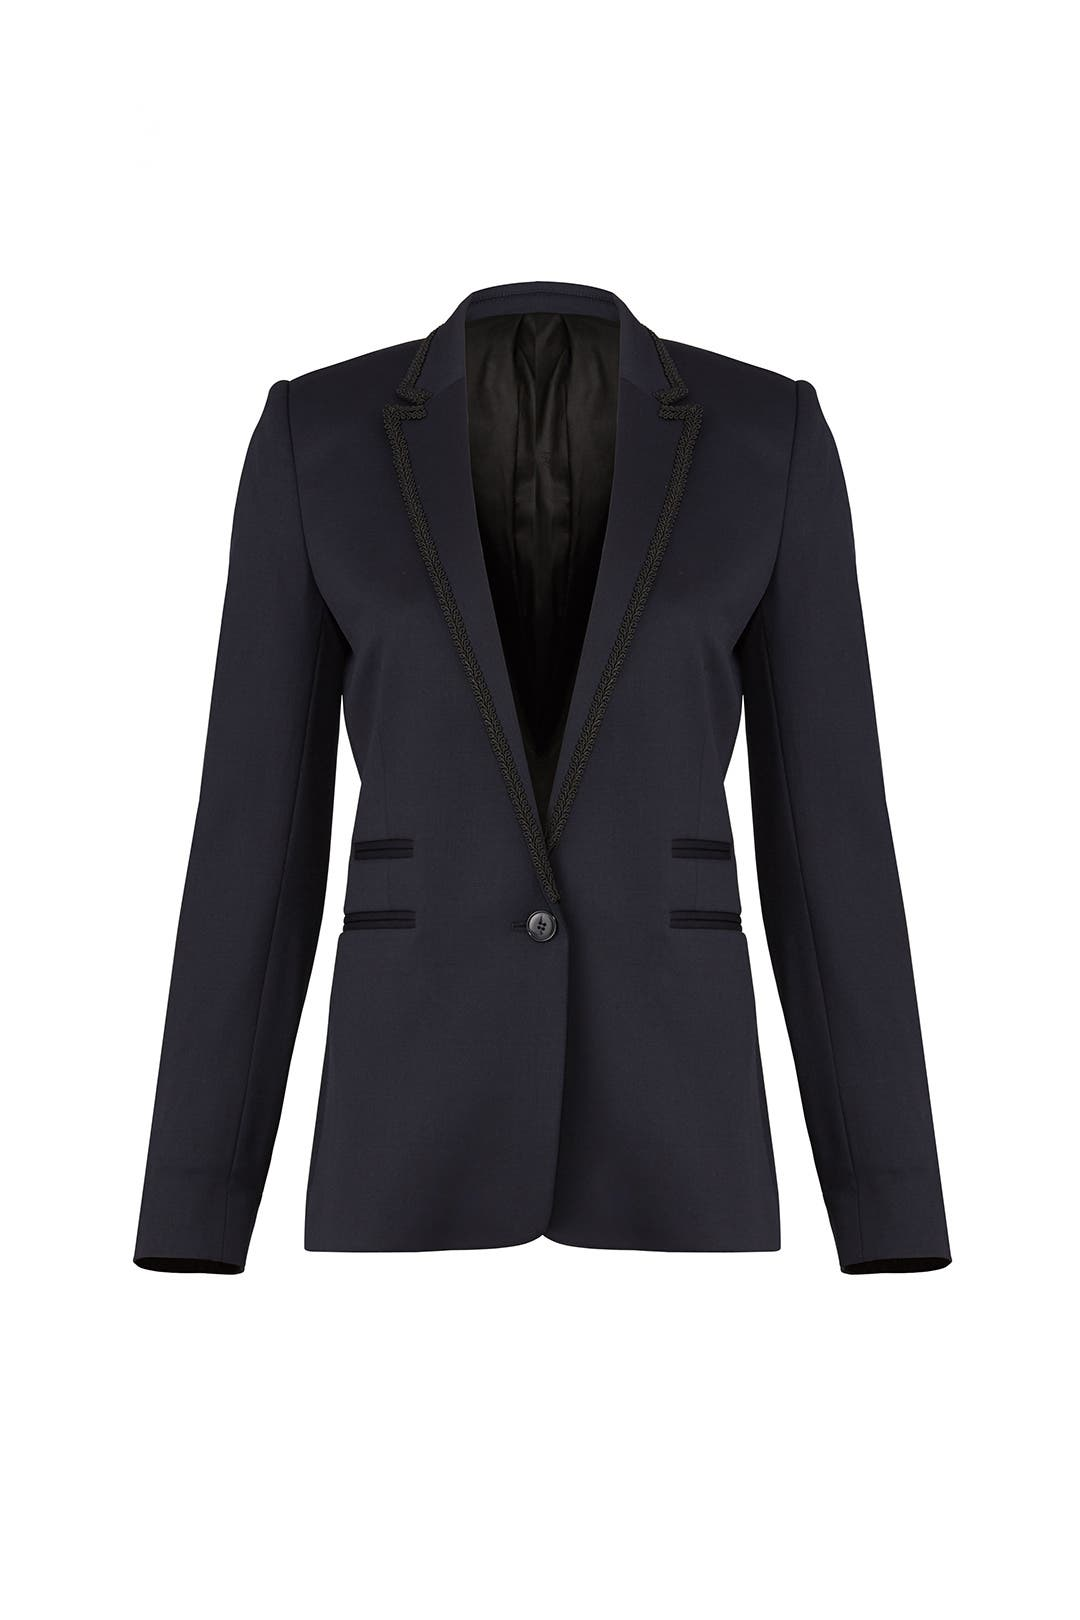 93764edd52 Navy Suit Jacket by The Kooples for $95 | Rent the Runway